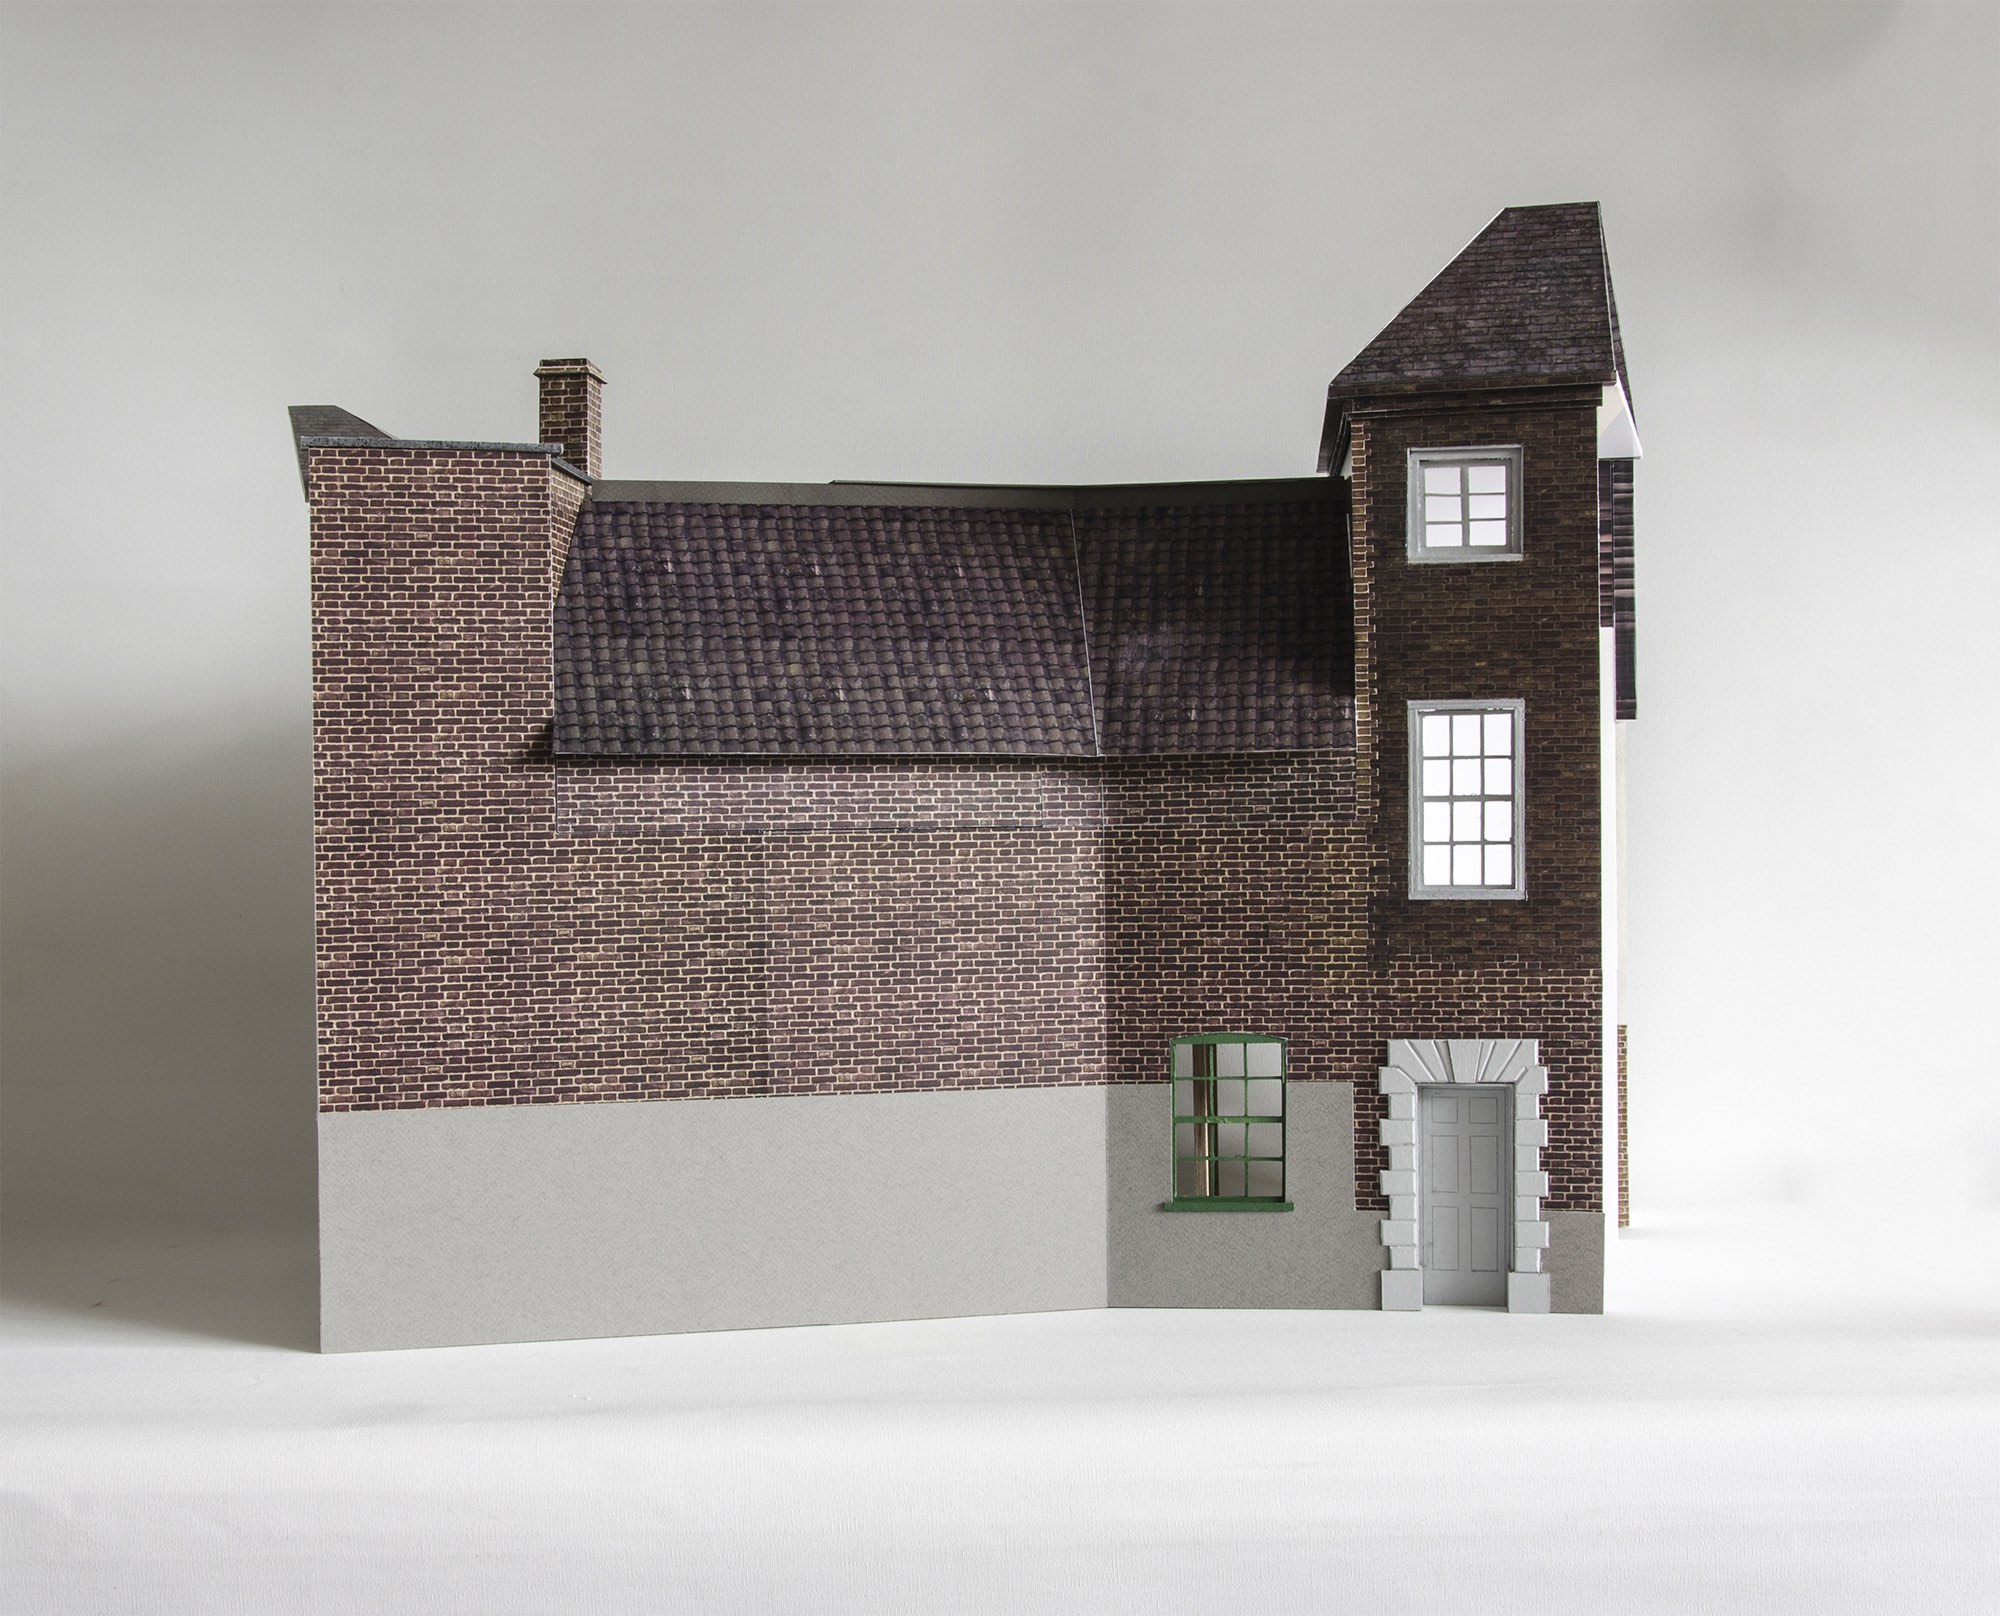 3144_The Bell Foundry_Link Block Model Fieldgate Street Facade.jpg